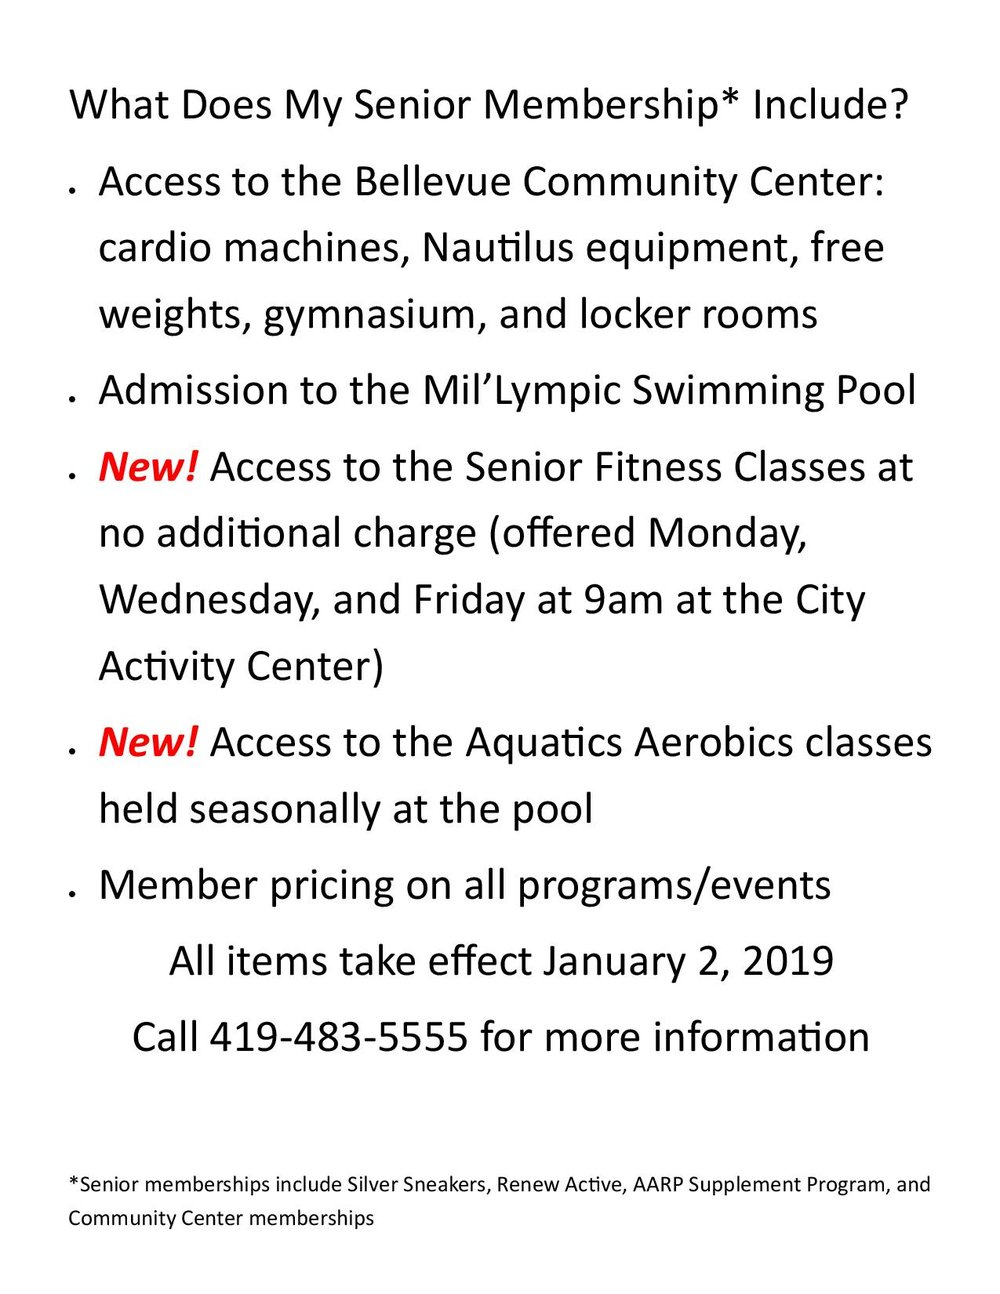 Senior Membership Information Sheet 12.19.18-page-002.jpg